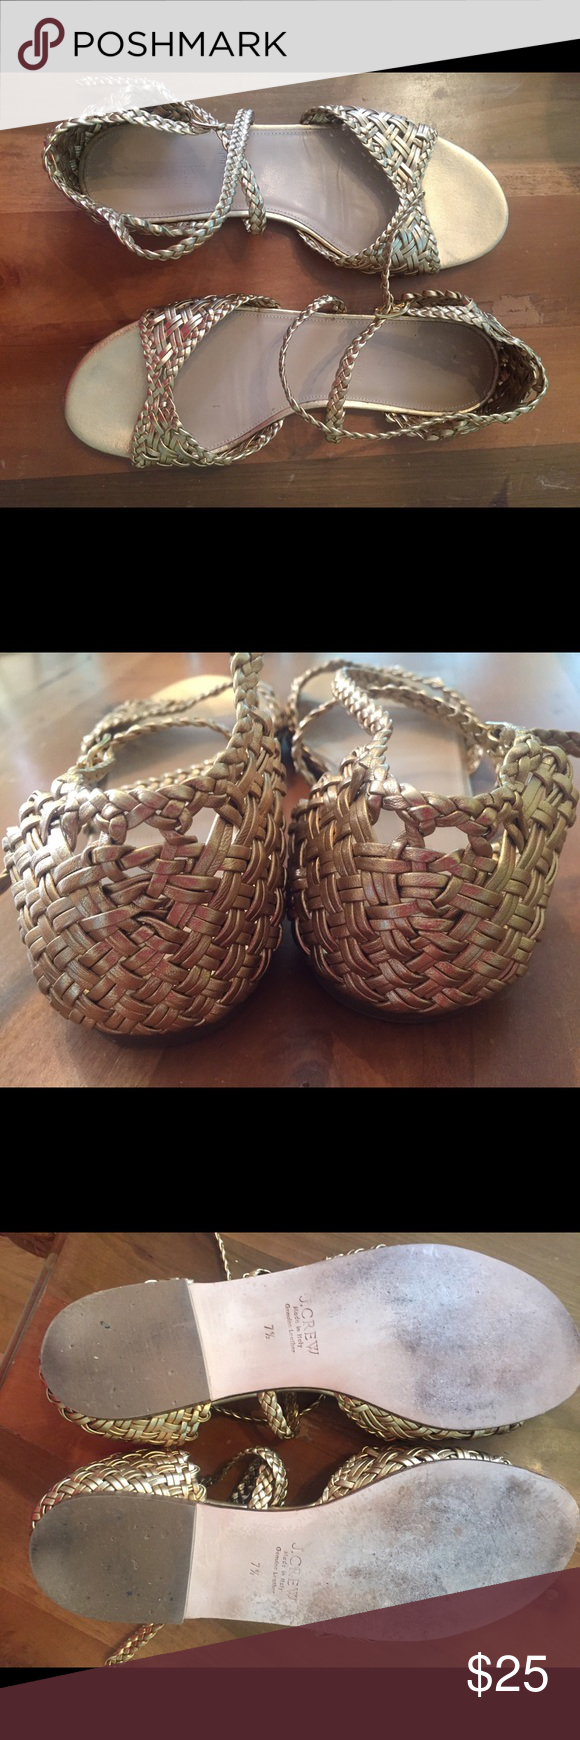 J.Crew gold sandals Very cute, EUC, wore once, 7.5 J. Crew Shoes Sandals